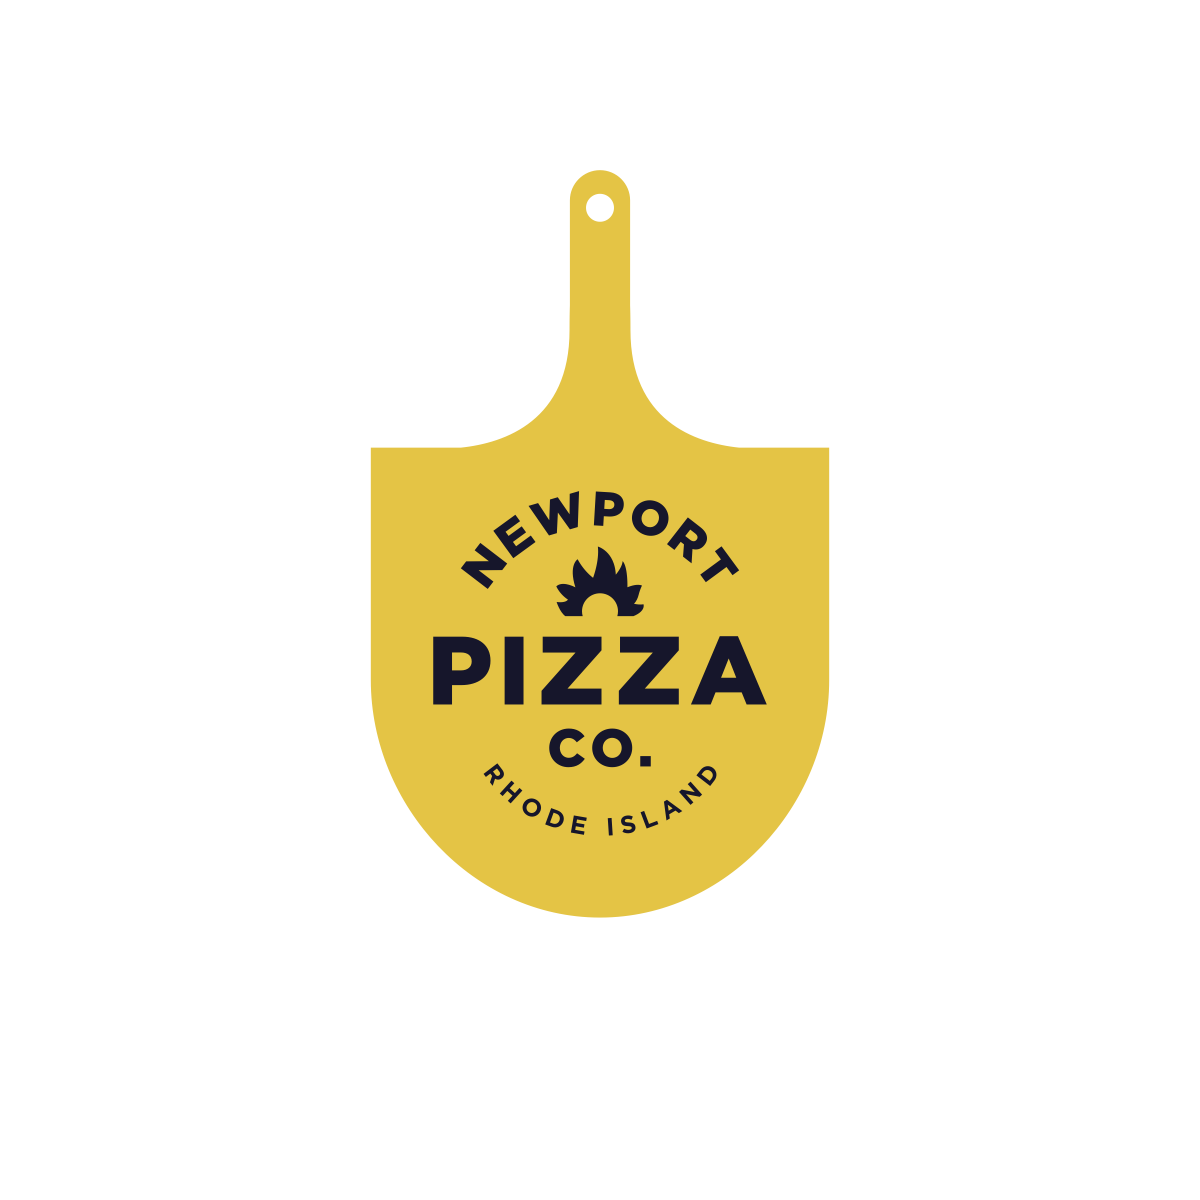 On Site Catering | Mobile Wood Burning Ovens | Wood Fired Pizza & Wings | NEWPORT PIZZA CO